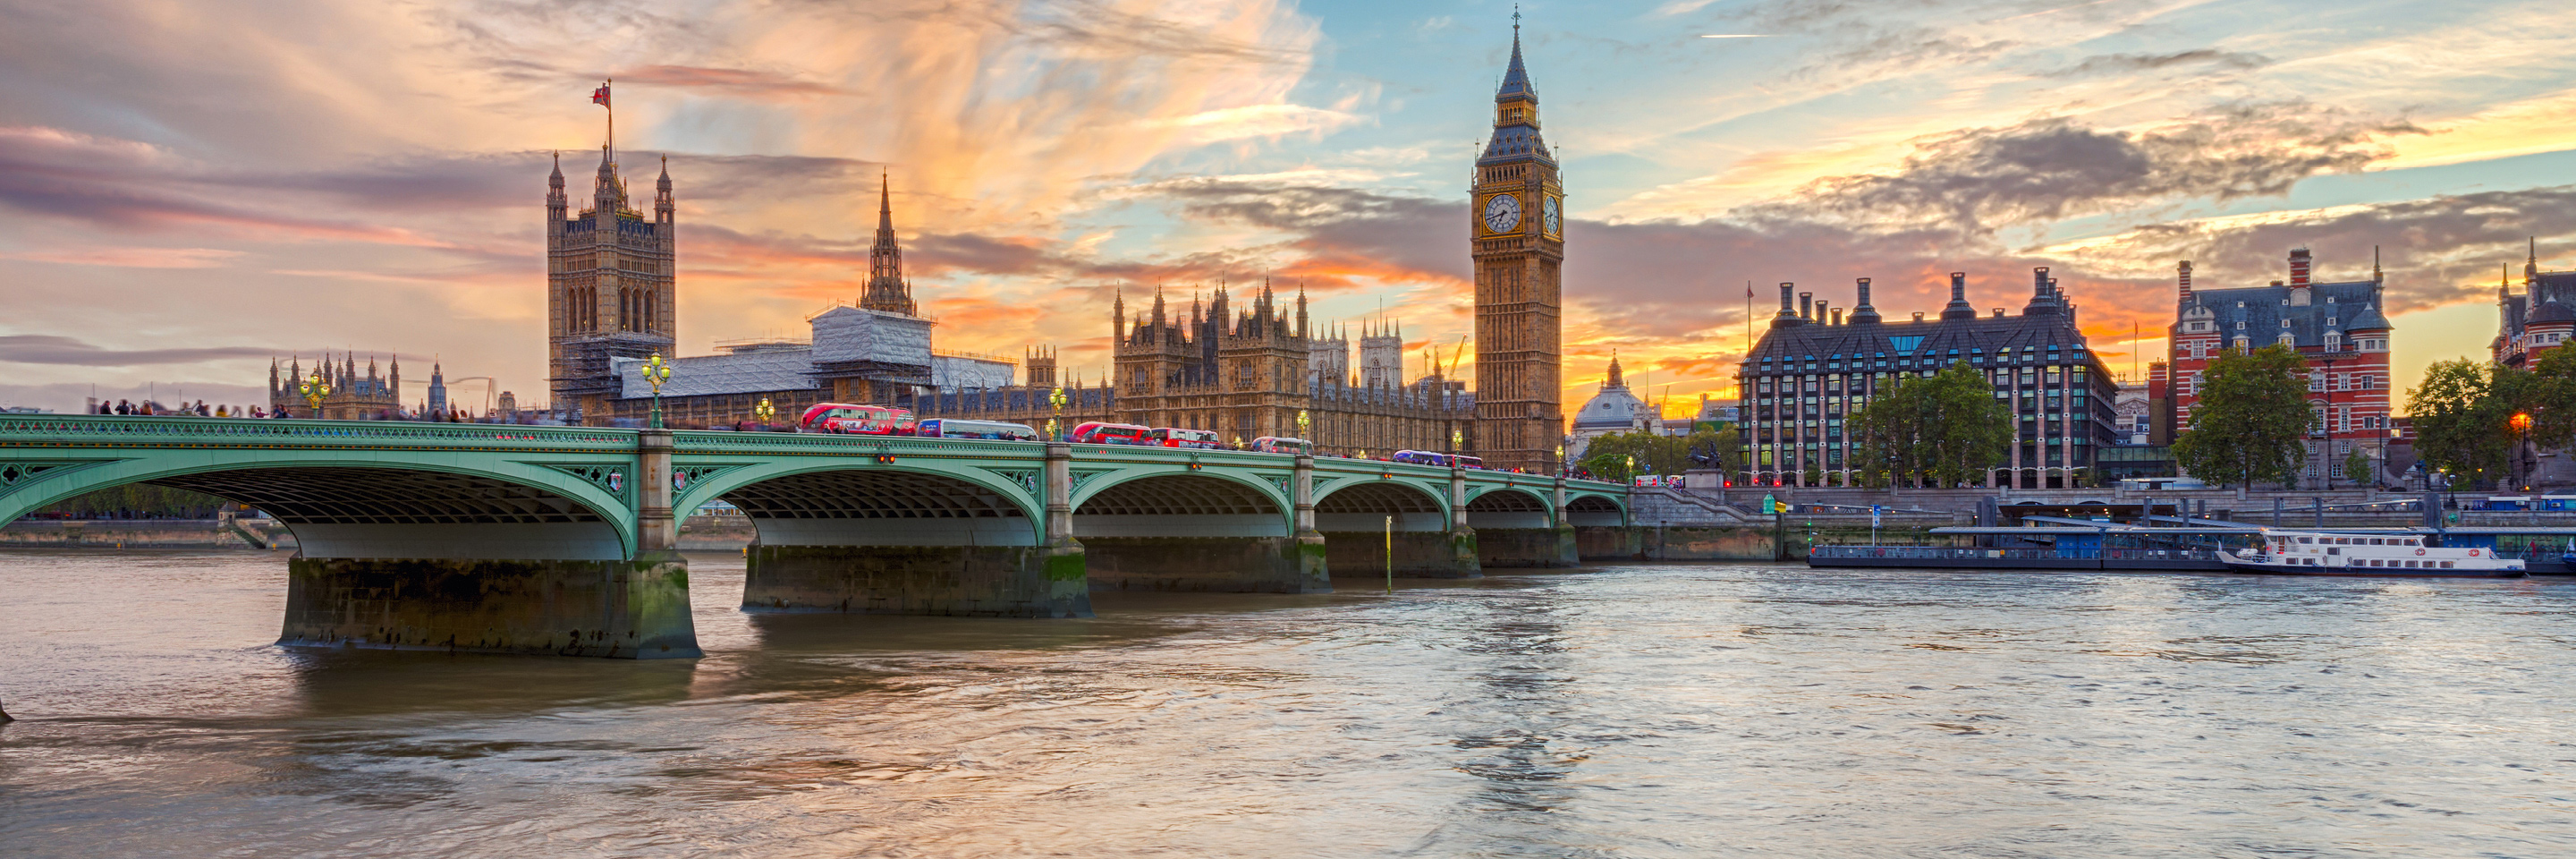 Jewels of Central Europe with 2 nights in  Paris & 2 nights in London